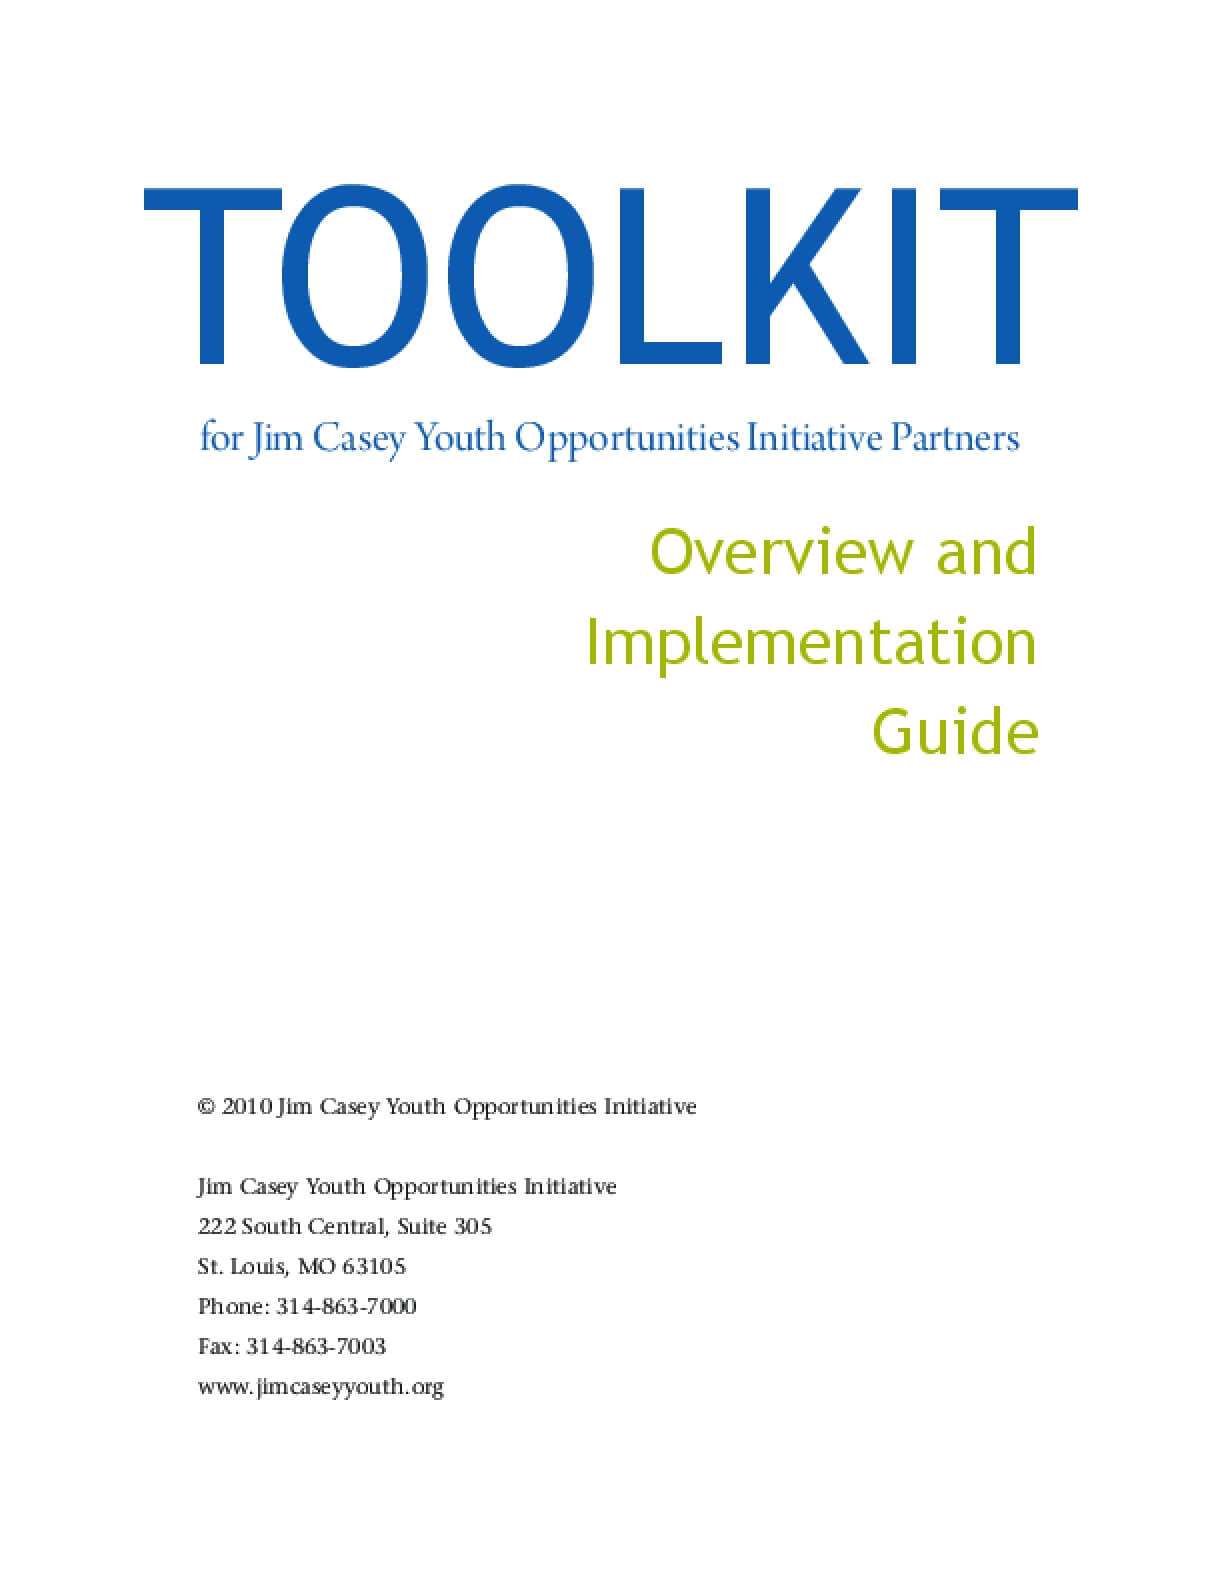 Toolkit for Jim Casey Youth Opportunities Initiative Partners: Overview and Implementation Guide